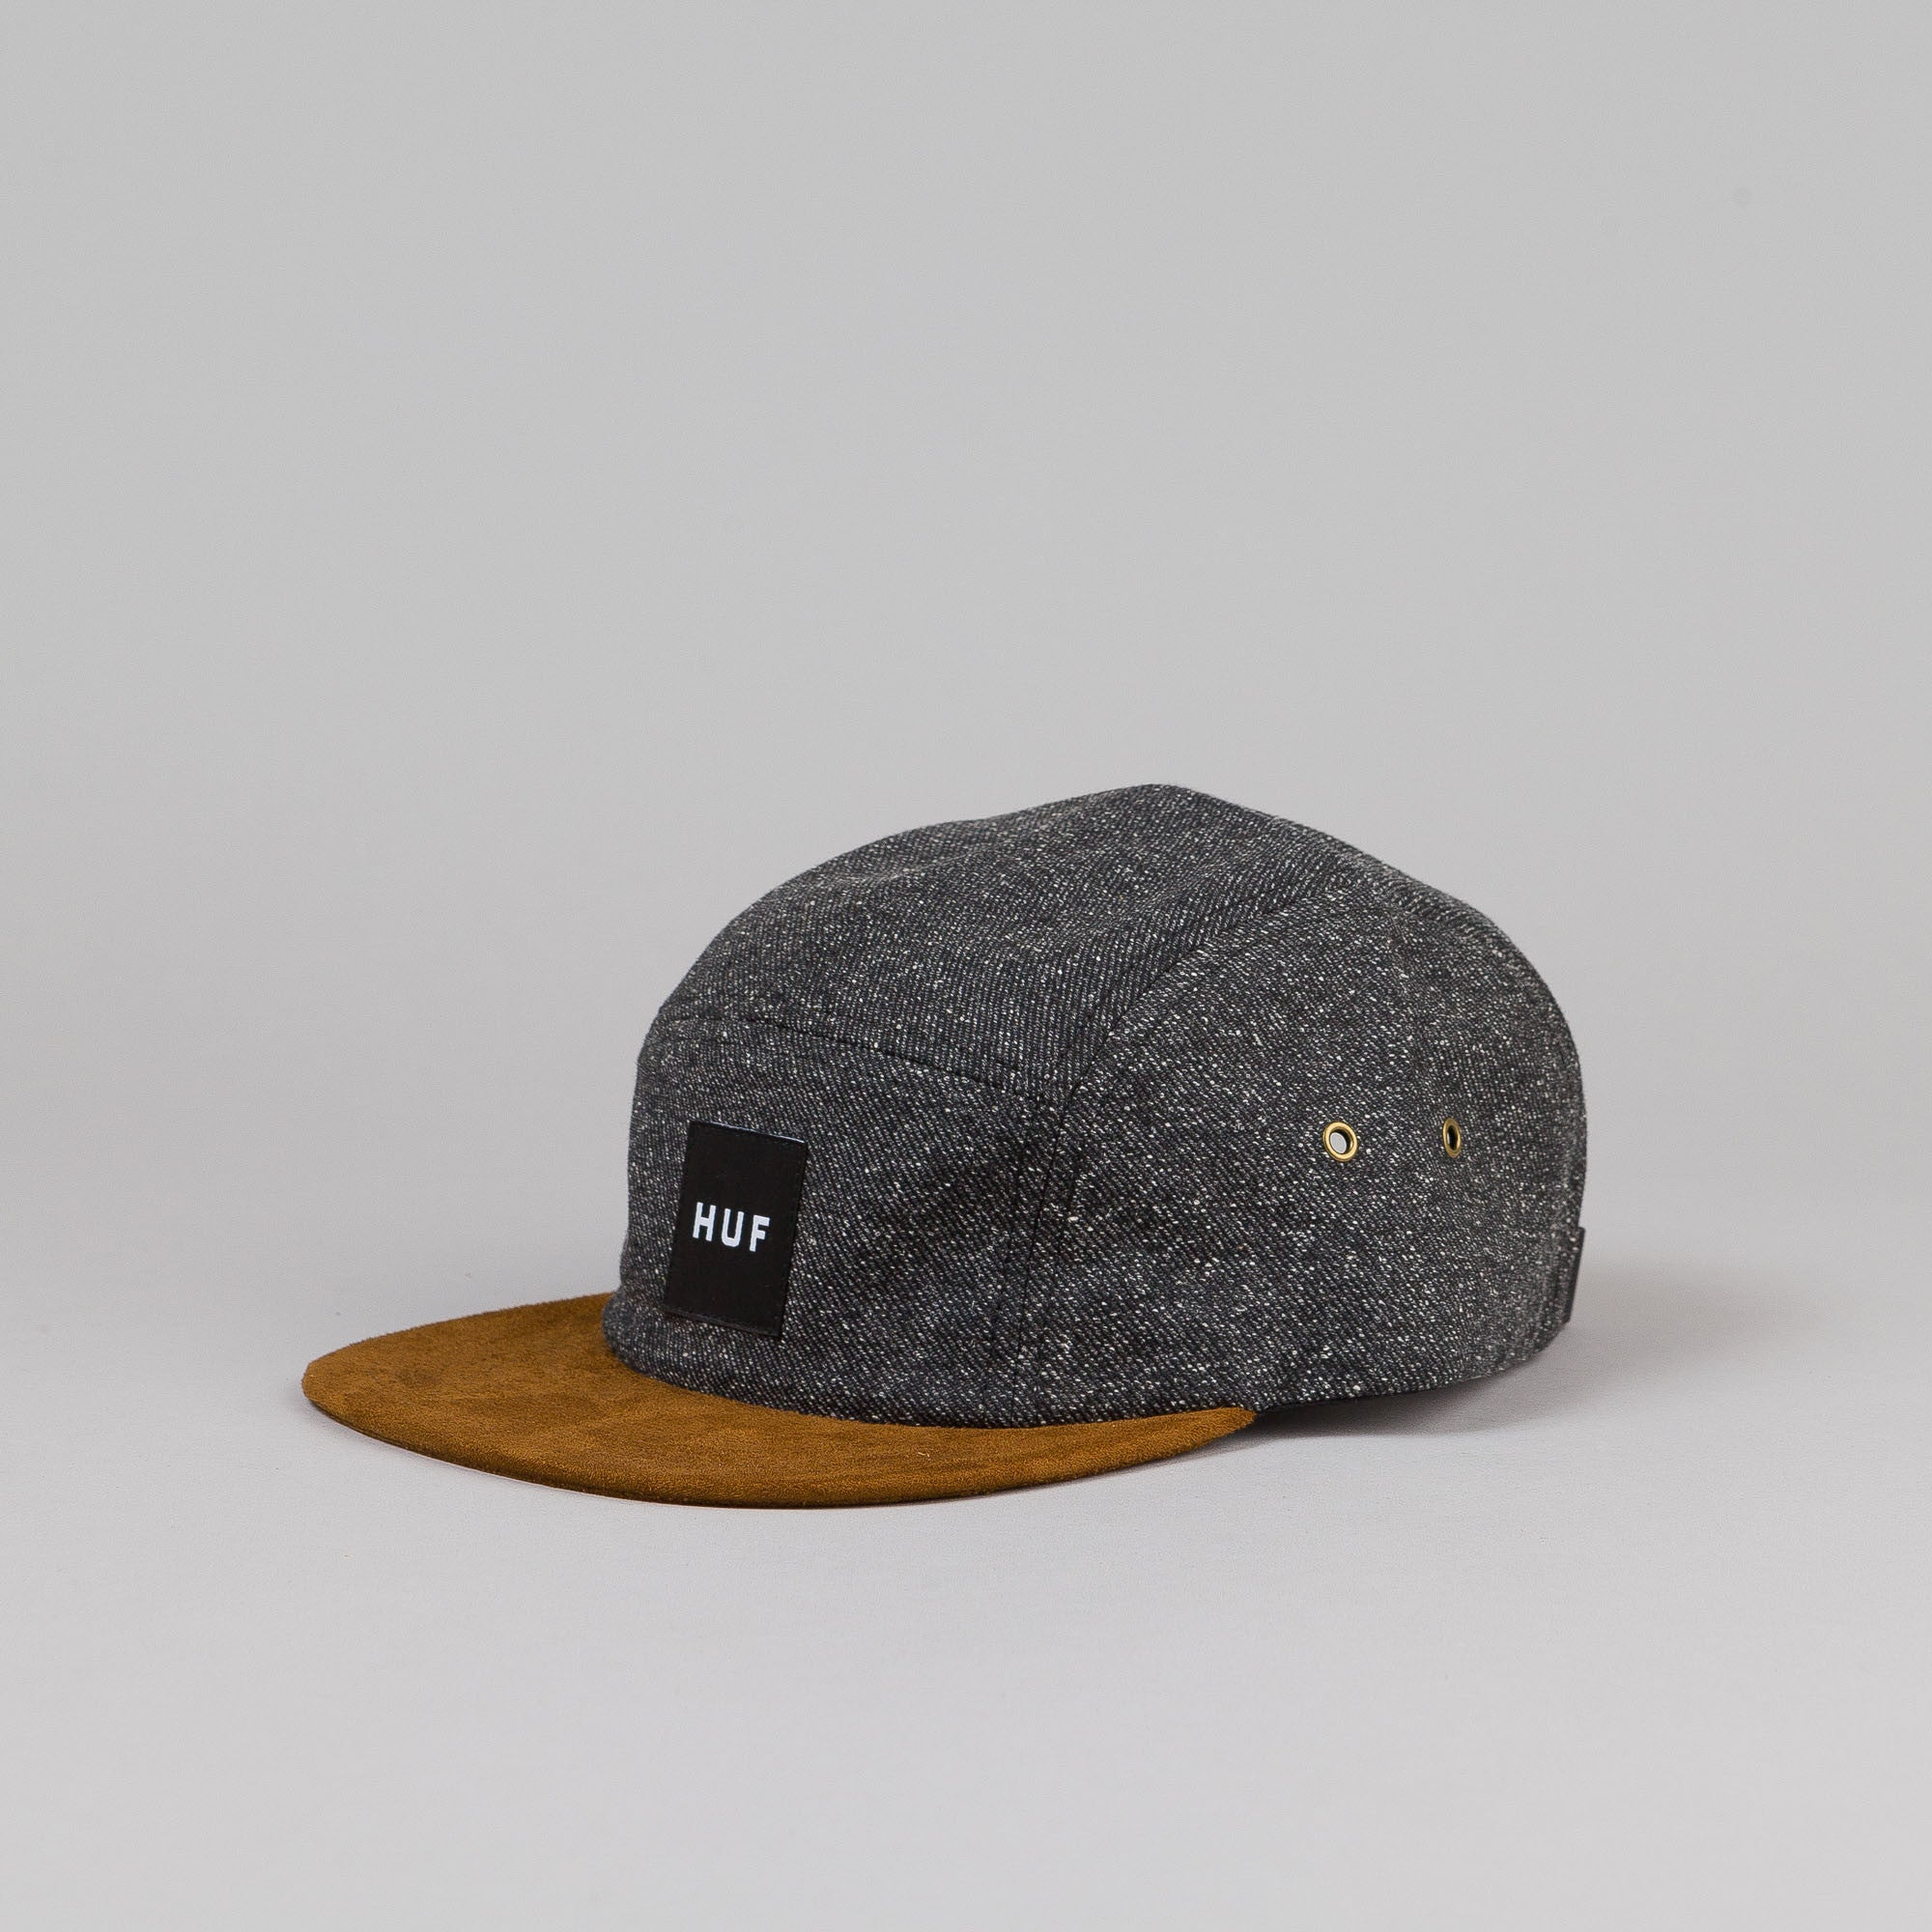 Huf Tweed Volley Cap Black